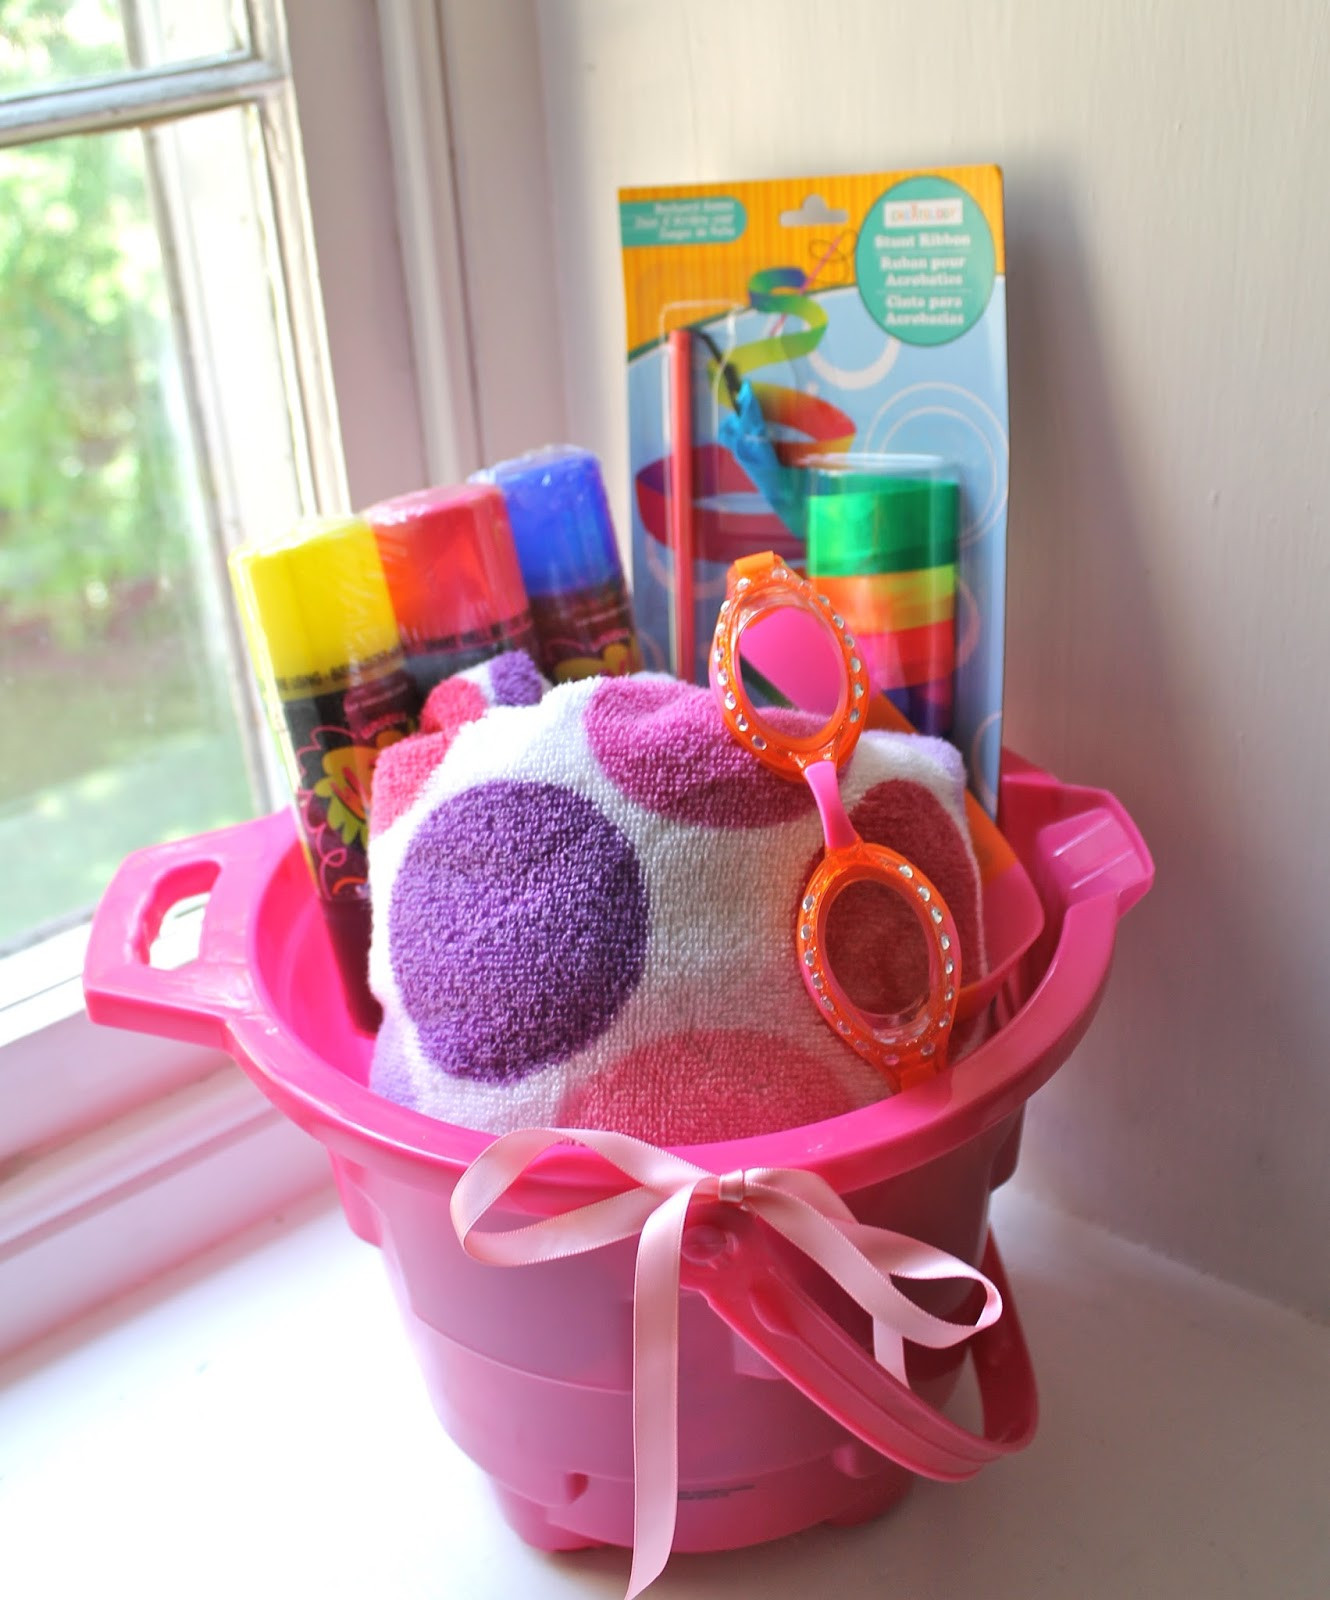 Welcome Gift Basket Ideas  Pretti Mini Blog Wel e Summer with an End of School